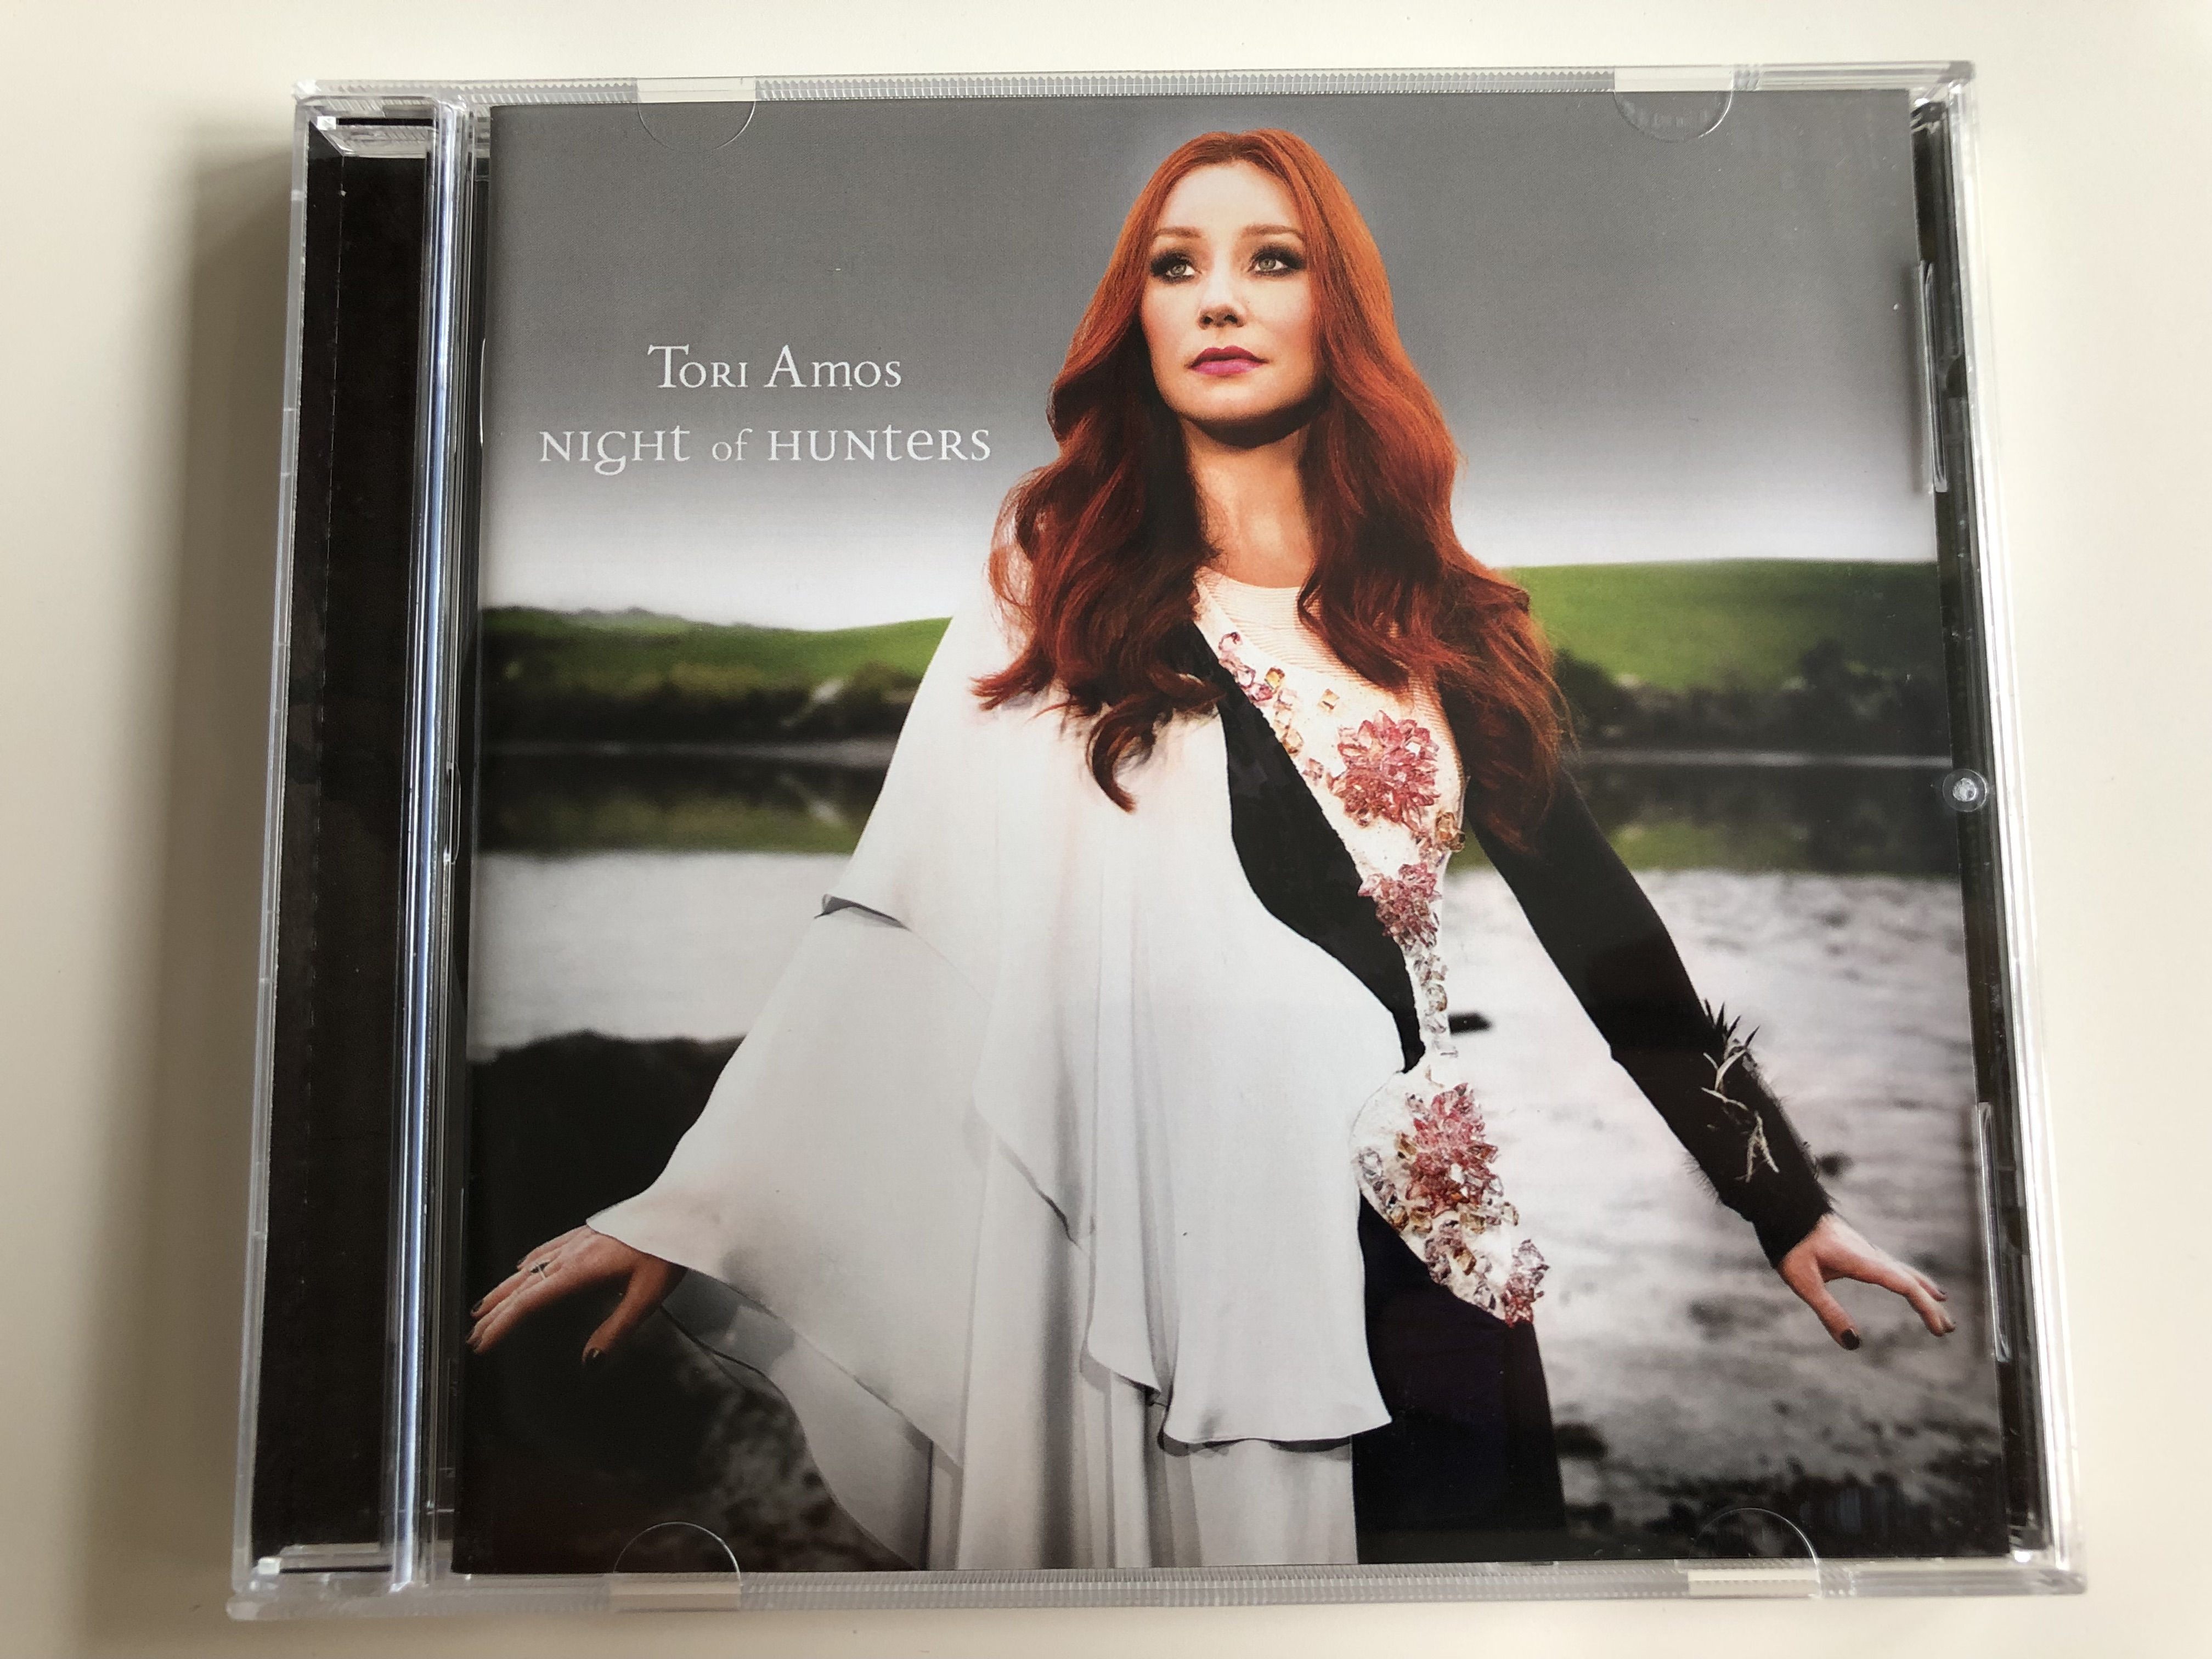 tori-amos-night-of-hunters-snowblind-fearlessness-job-s-coffin-the-chase-seven-sisters-audio-cd-2011-1-.jpg